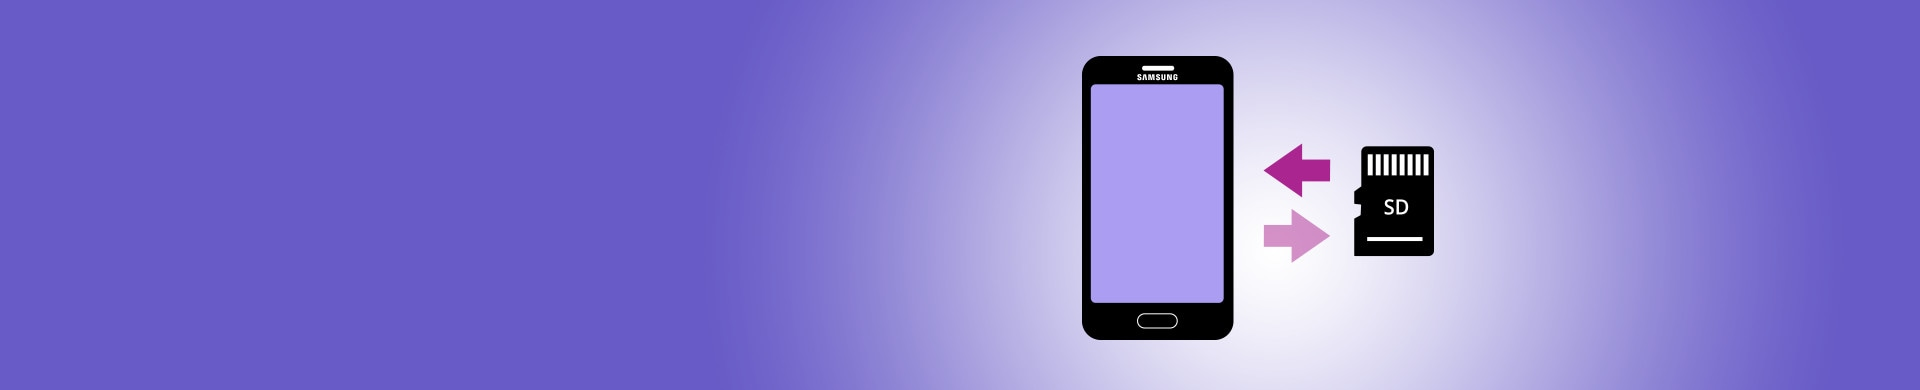 Smart Switch Transfer Data From SD Card | Samsung Galaxy